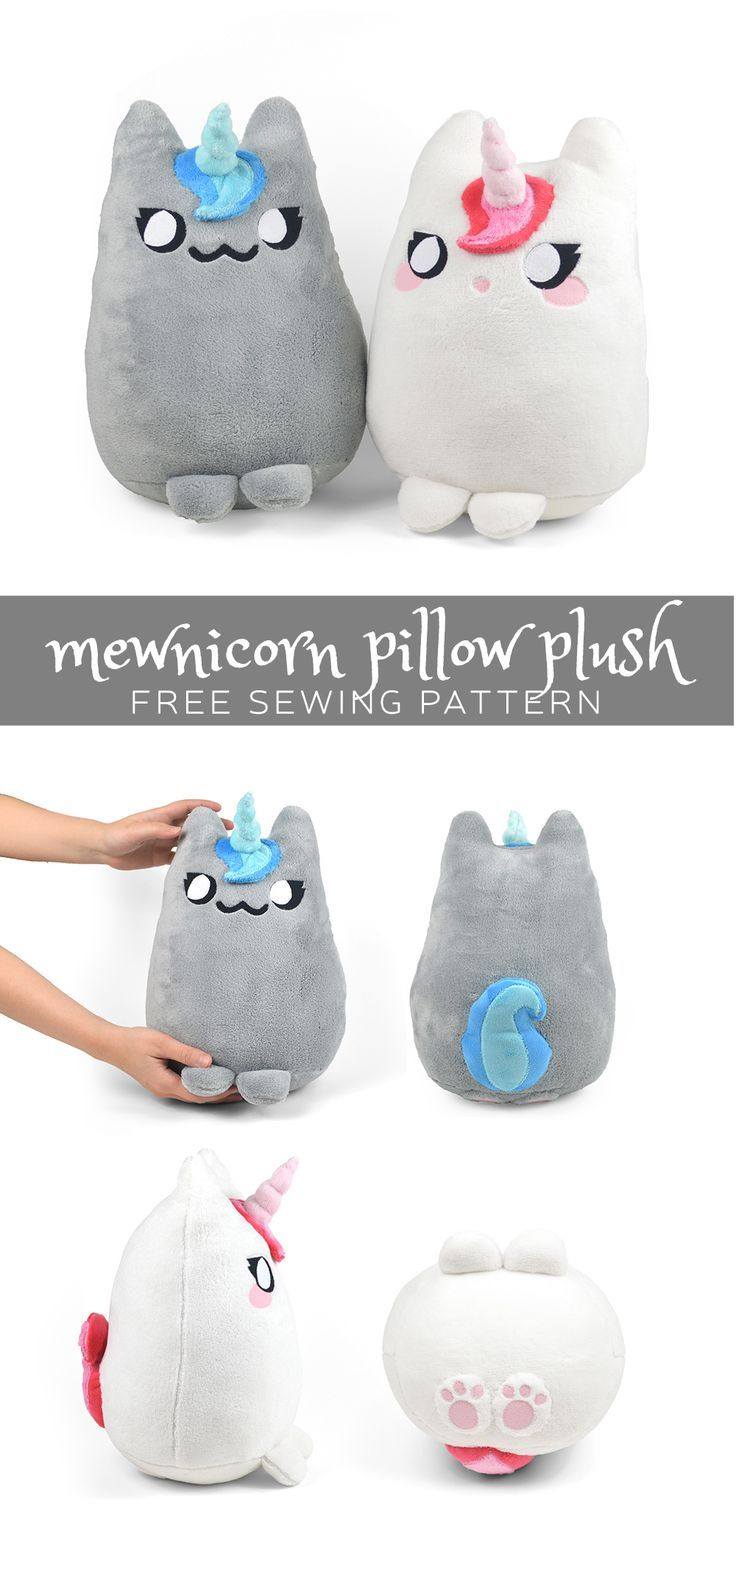 Mewnicorn pillow plush free PDF pattern and tutorial to download ...